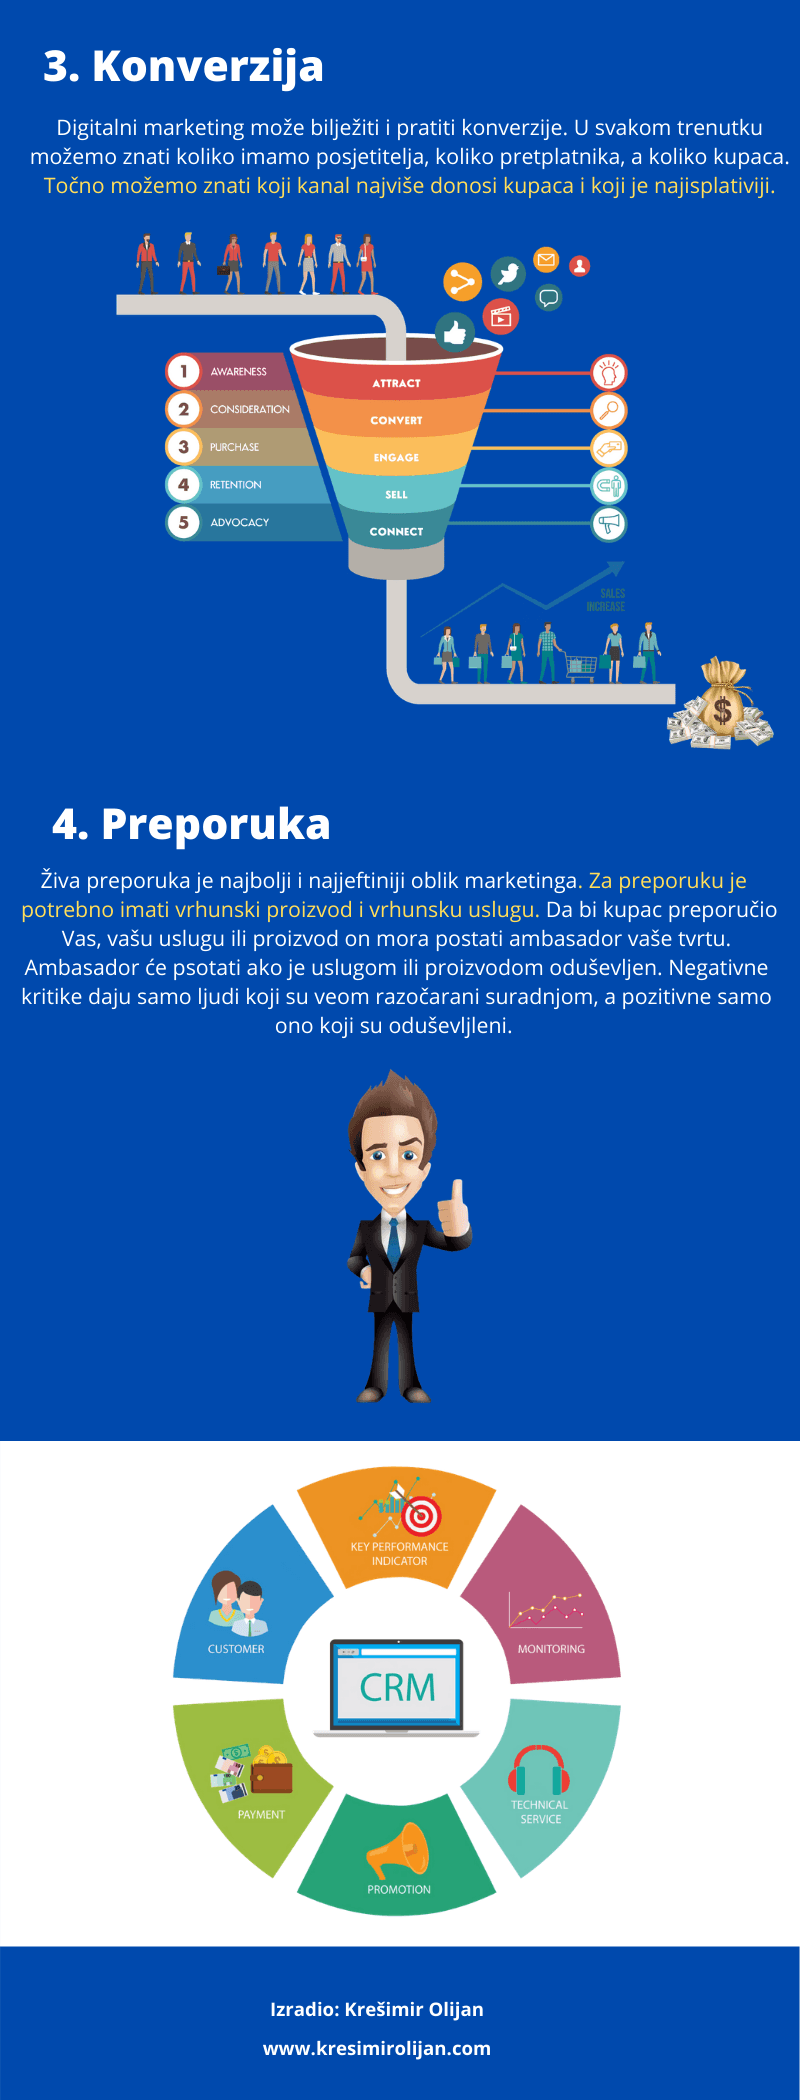 4 stupa online marketinga - 2. dio